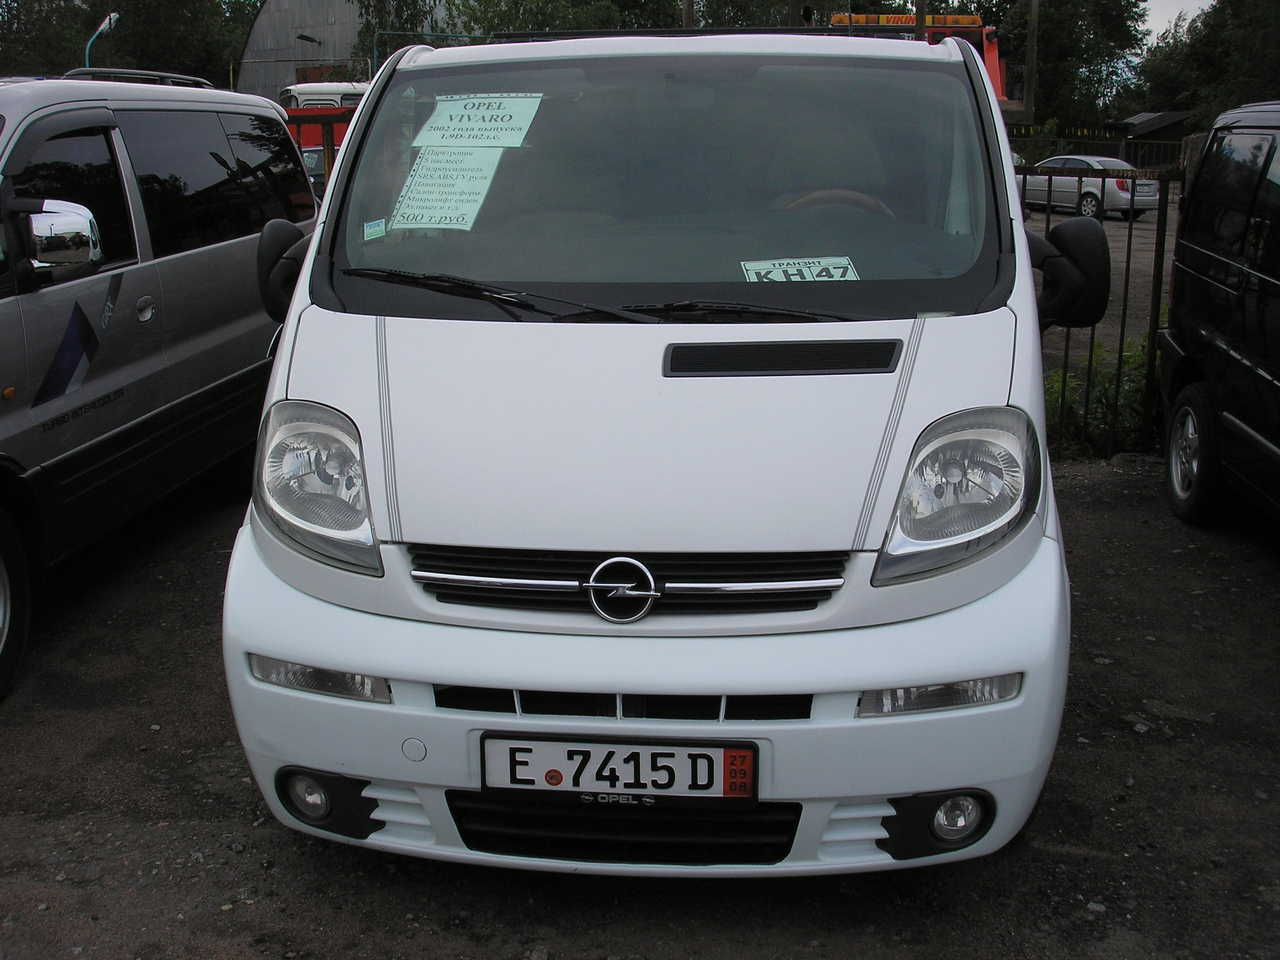 used 2002 opel vivaro photos 1900cc gasoline ff manual for sale. Black Bedroom Furniture Sets. Home Design Ideas